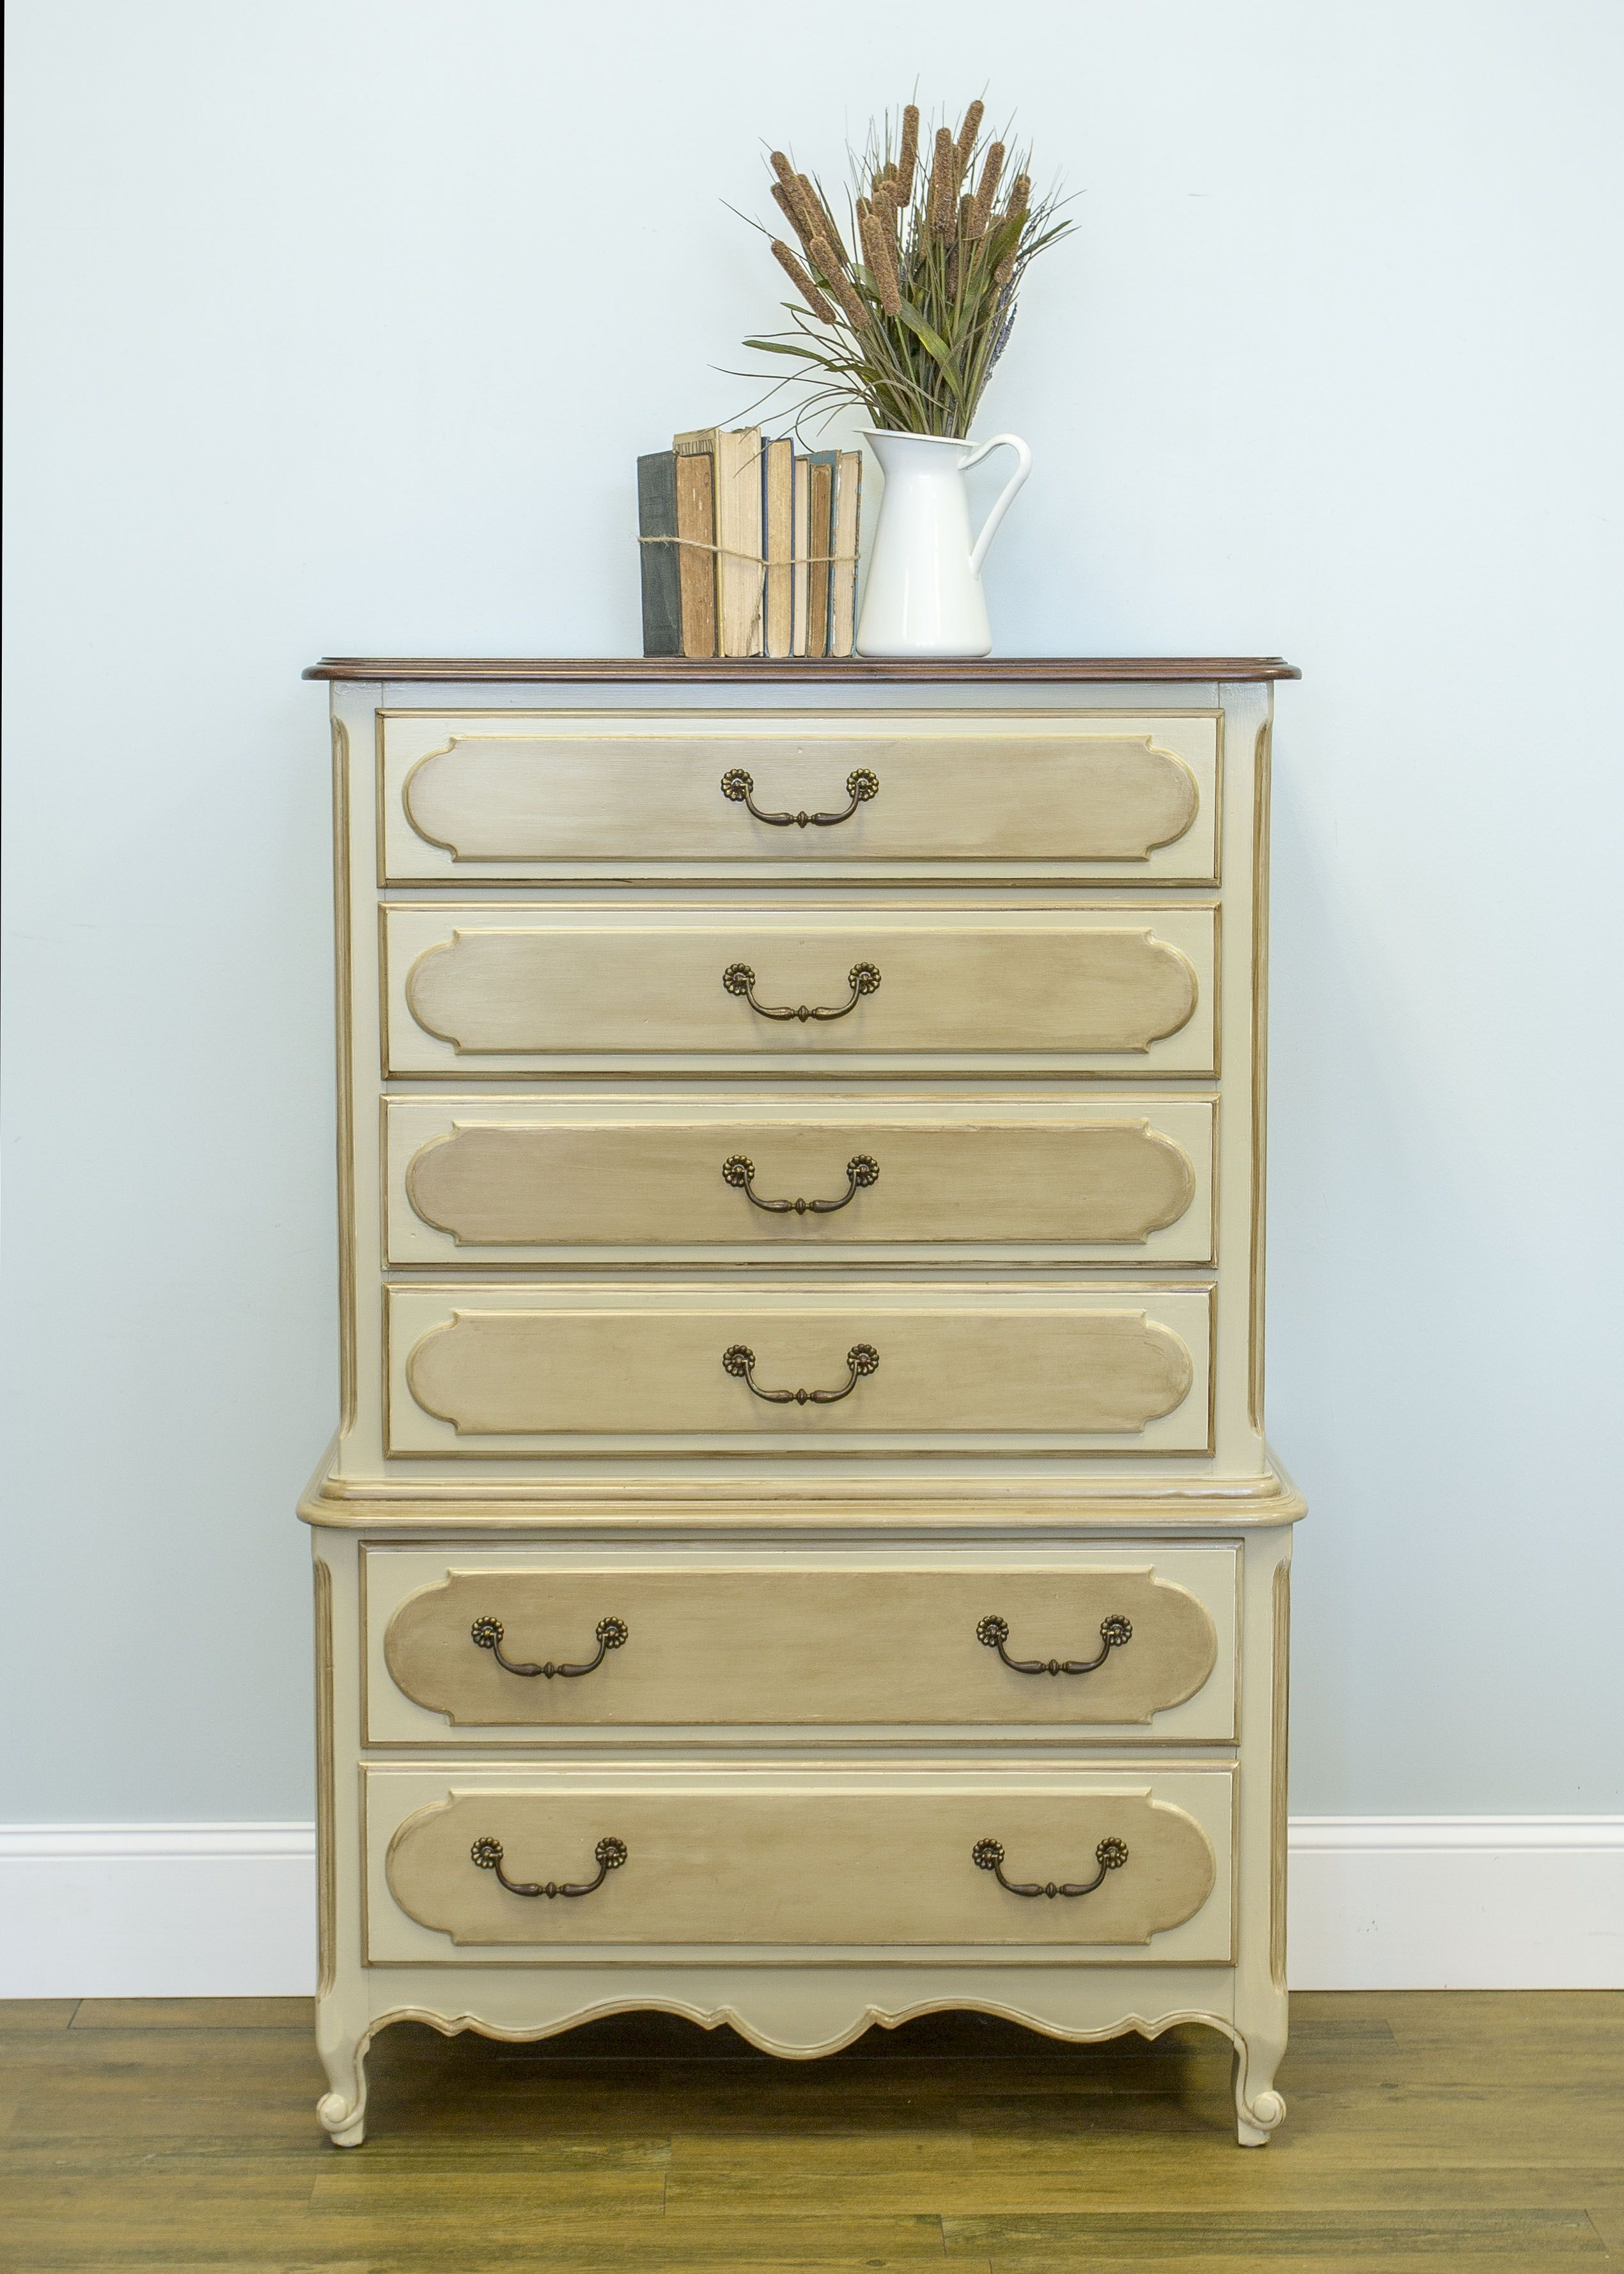 I refinished this highboy in General Finishes Millstone Milk Paint